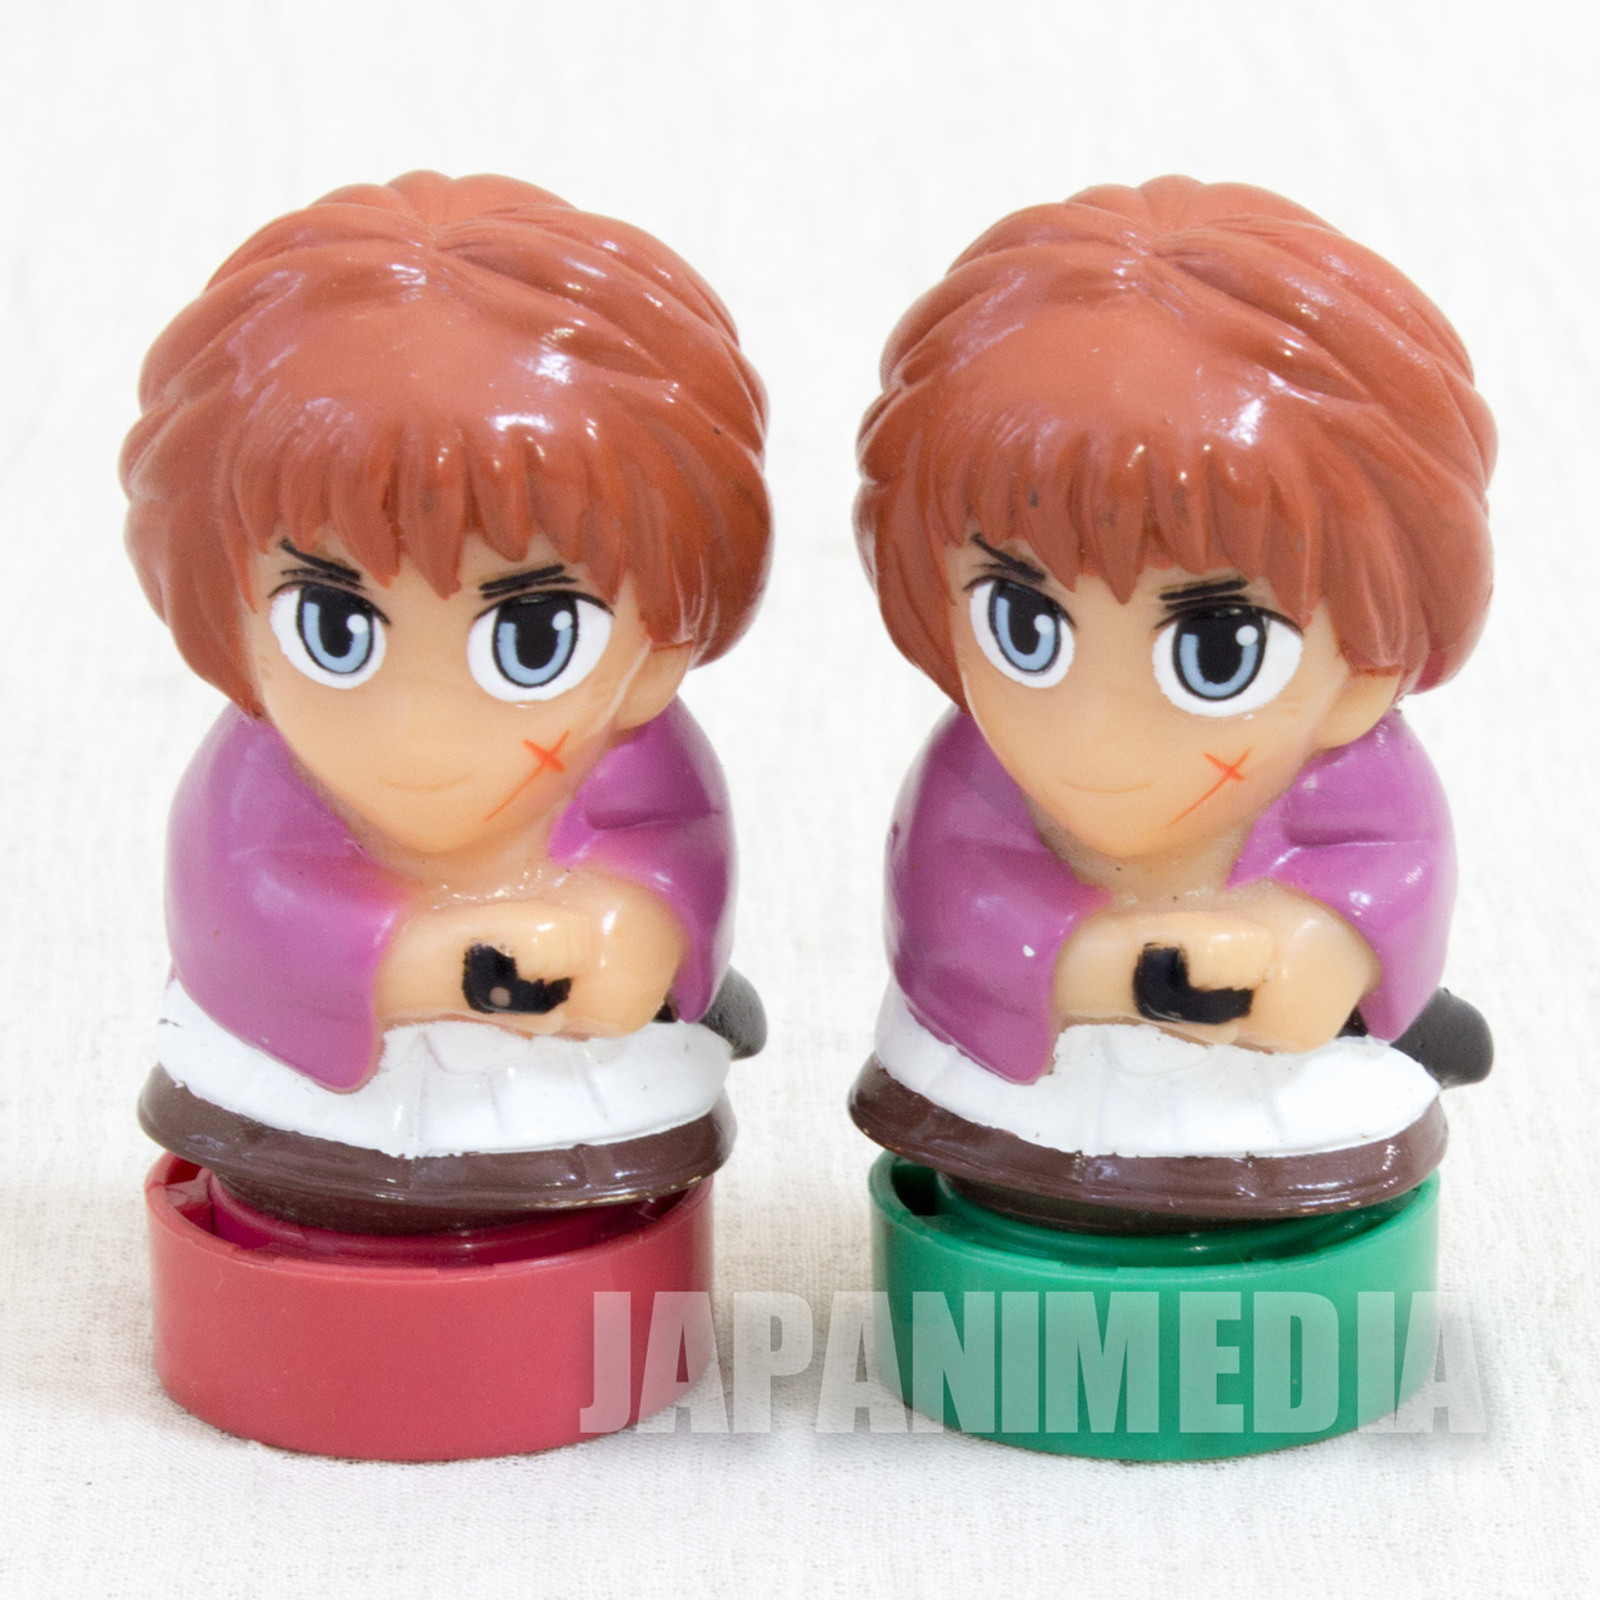 Rurouni Kenshin Figure Stamp 2pc JAPAN ANIME MANGA